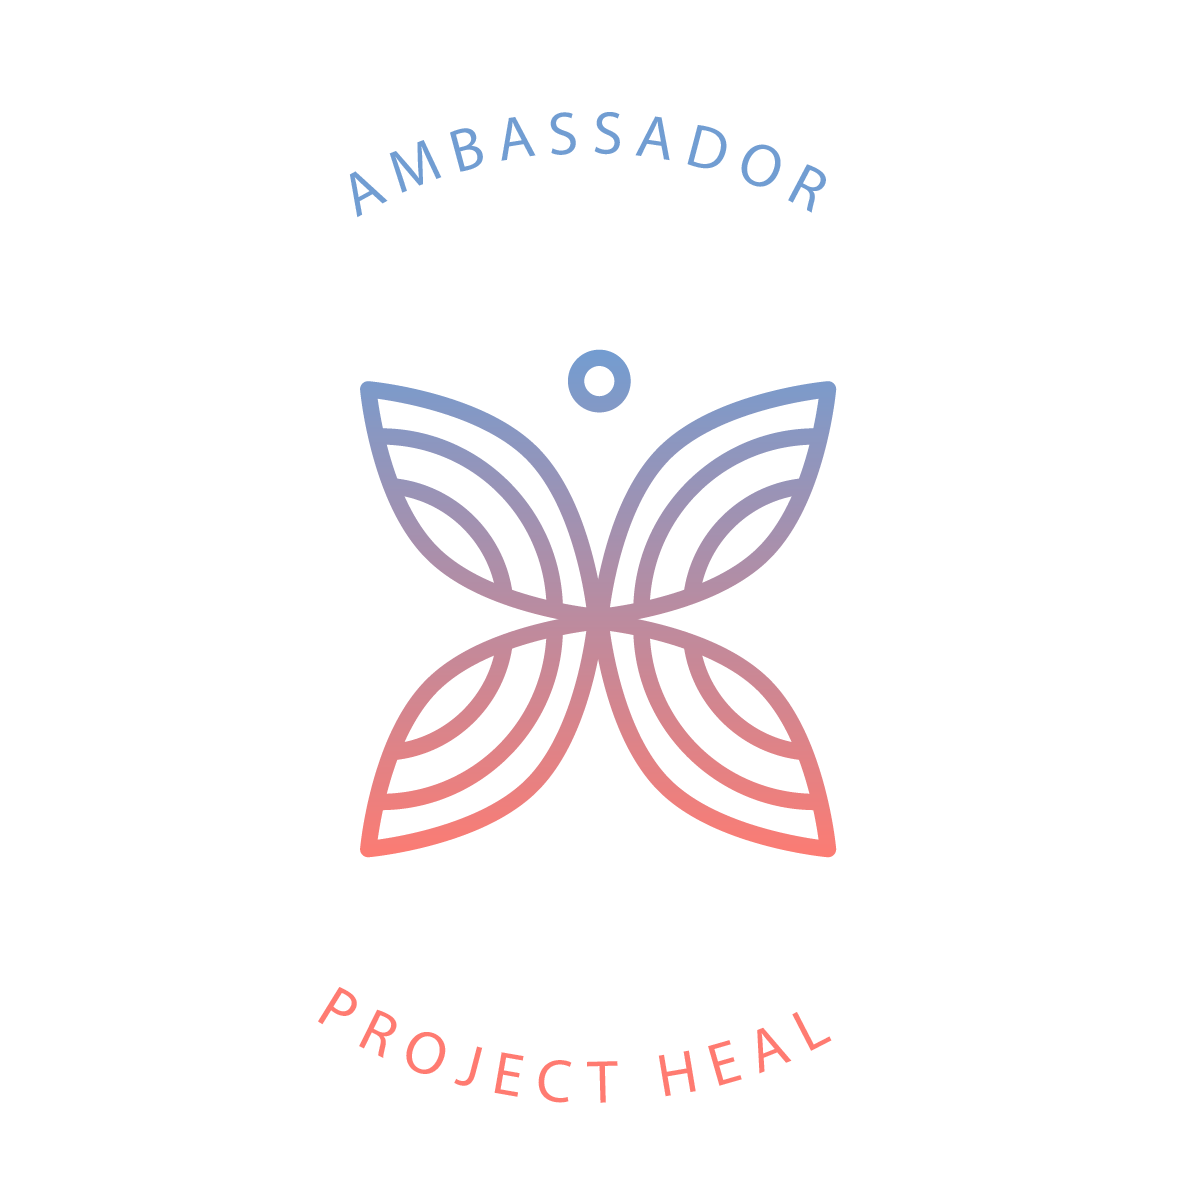 project-heal-ambassador-badge